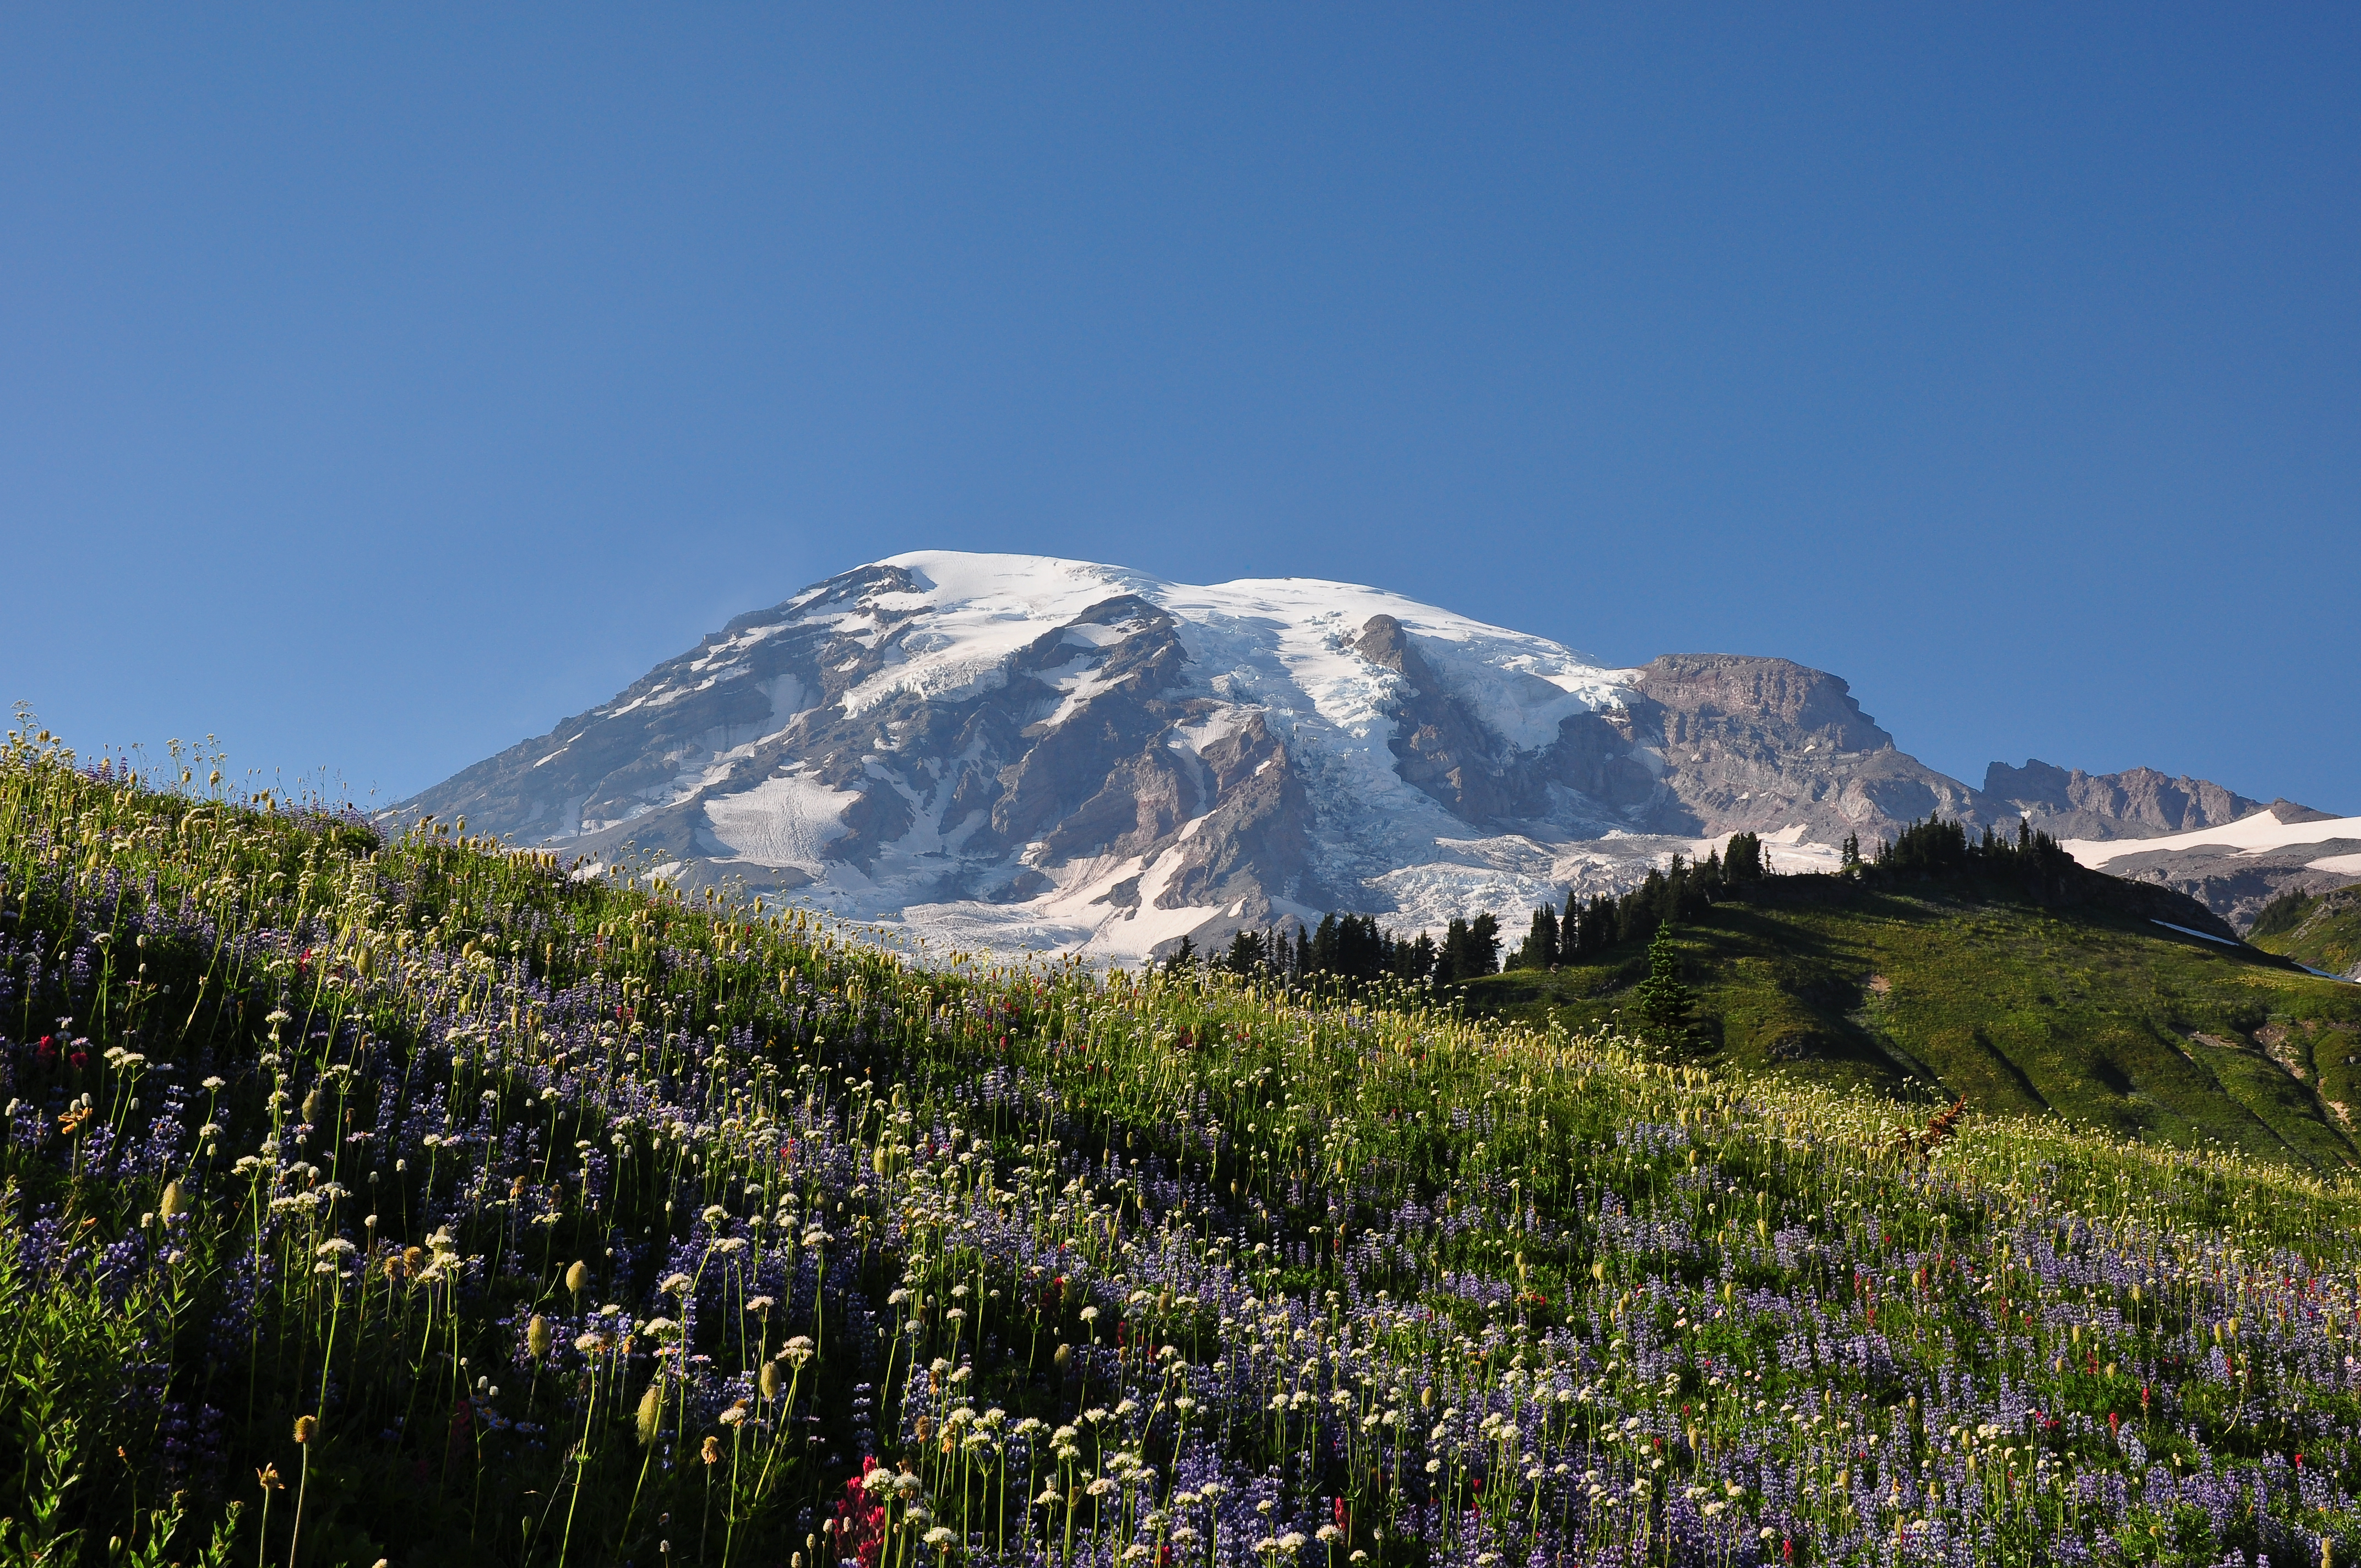 mount rainier asian girl personals Mount rainier in washington is the center of the nation's fifth national park the mountain is 14,410 feet and the tallest volcano in the cascade mountain range.